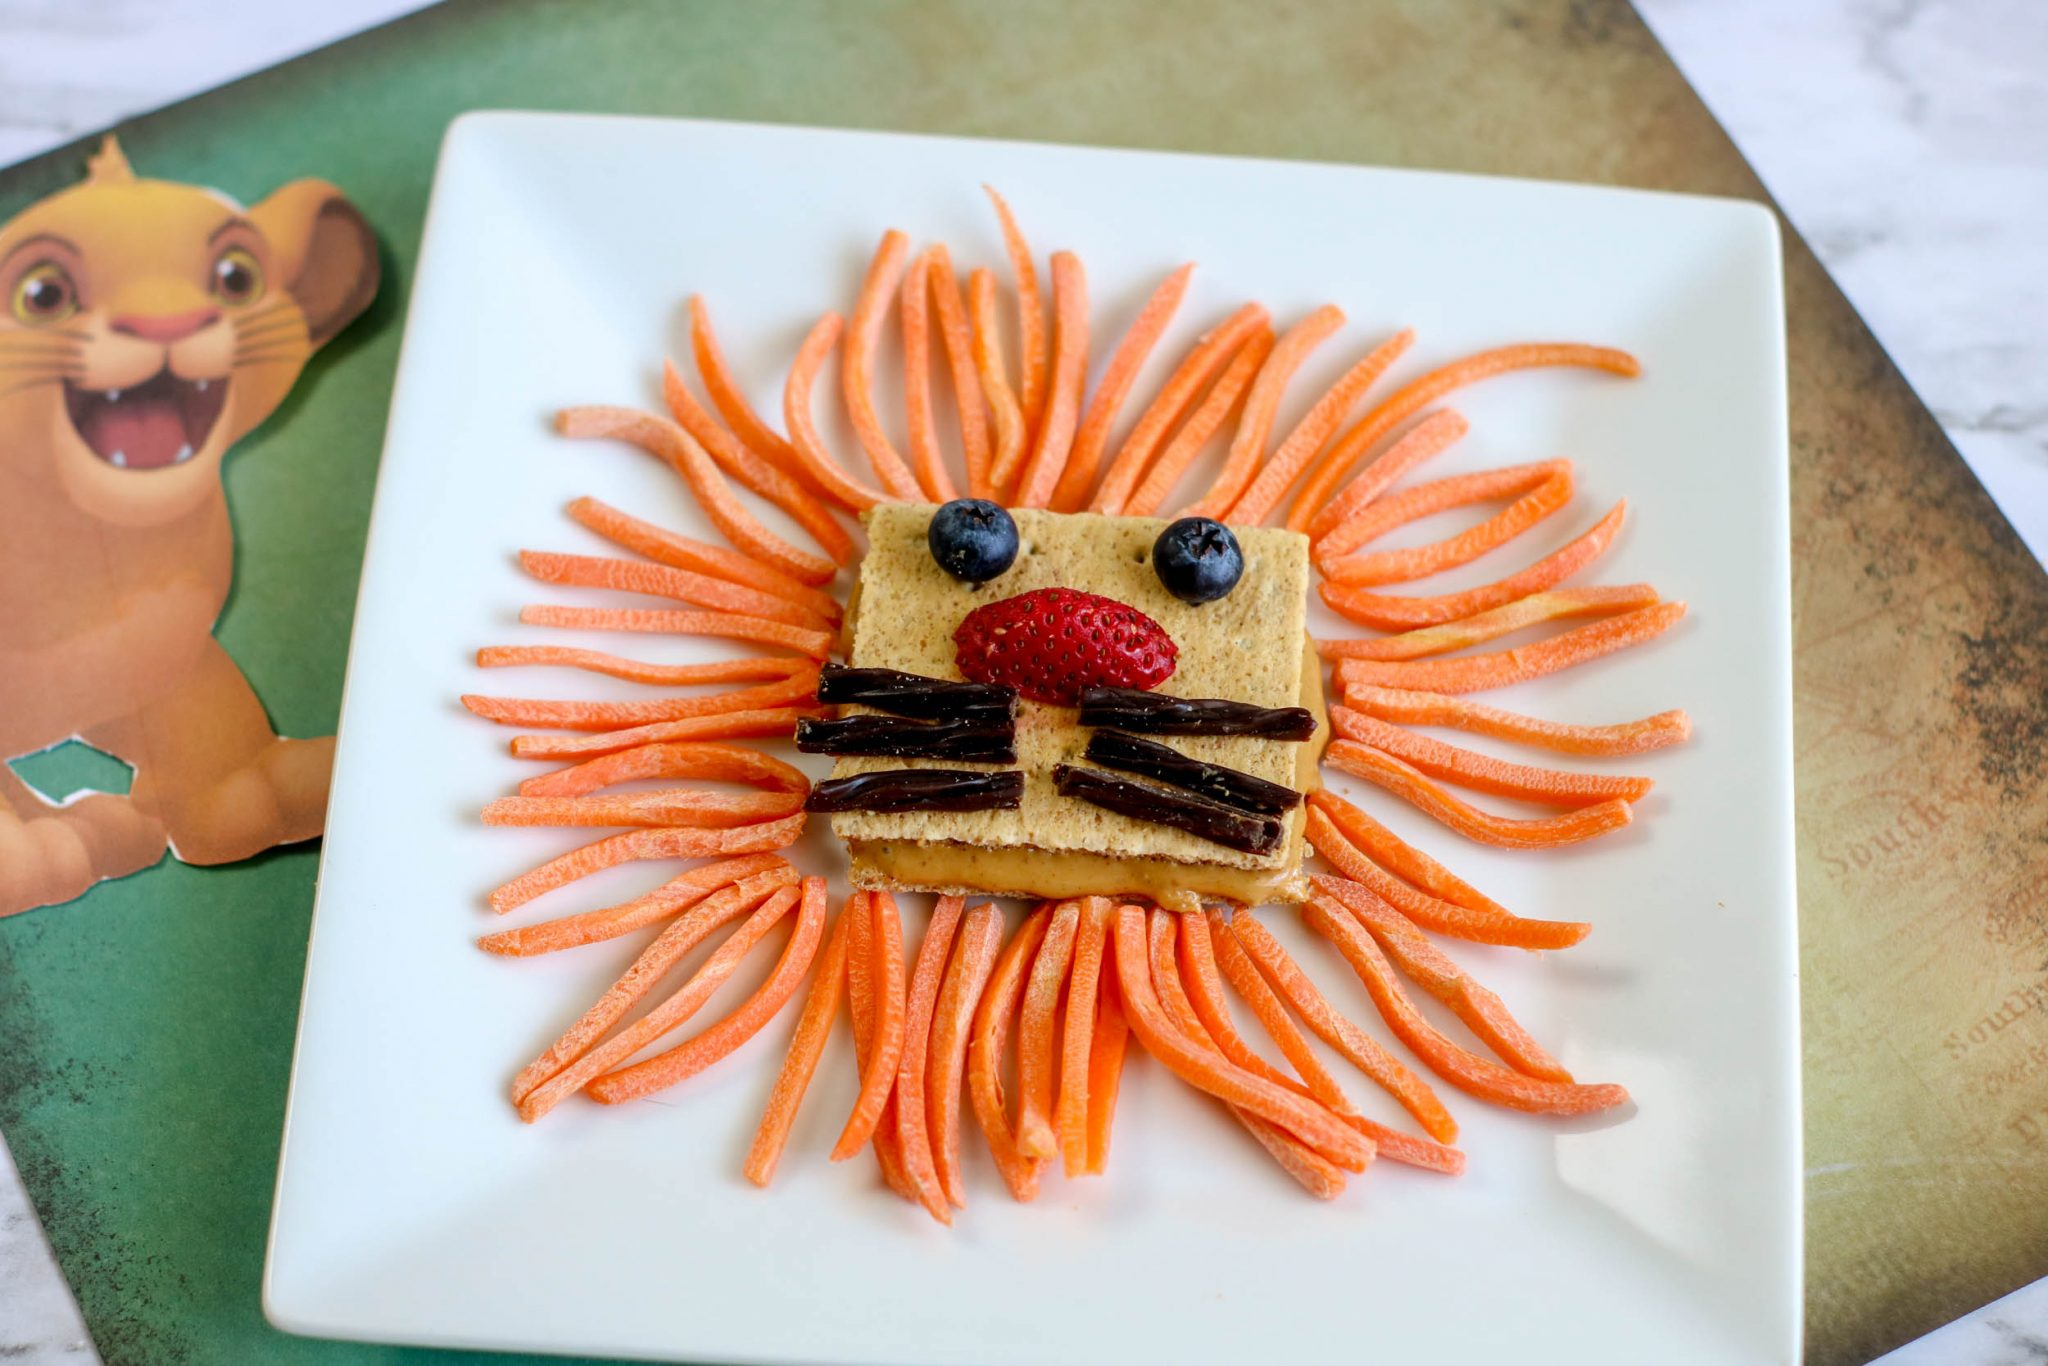 The Lion King themed recipe